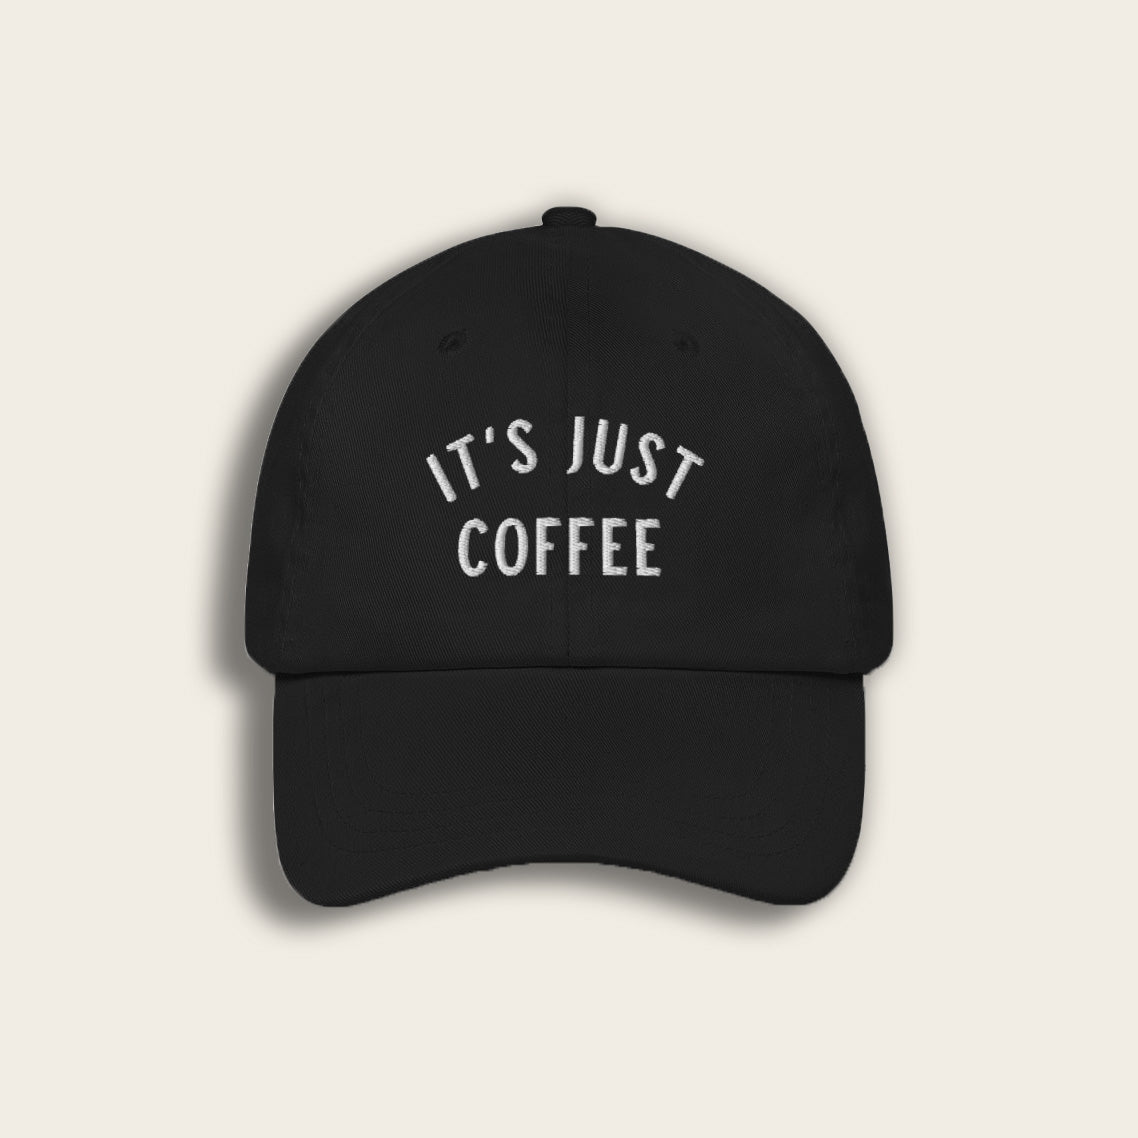 It's Just Coffee Baseball Cap - Black